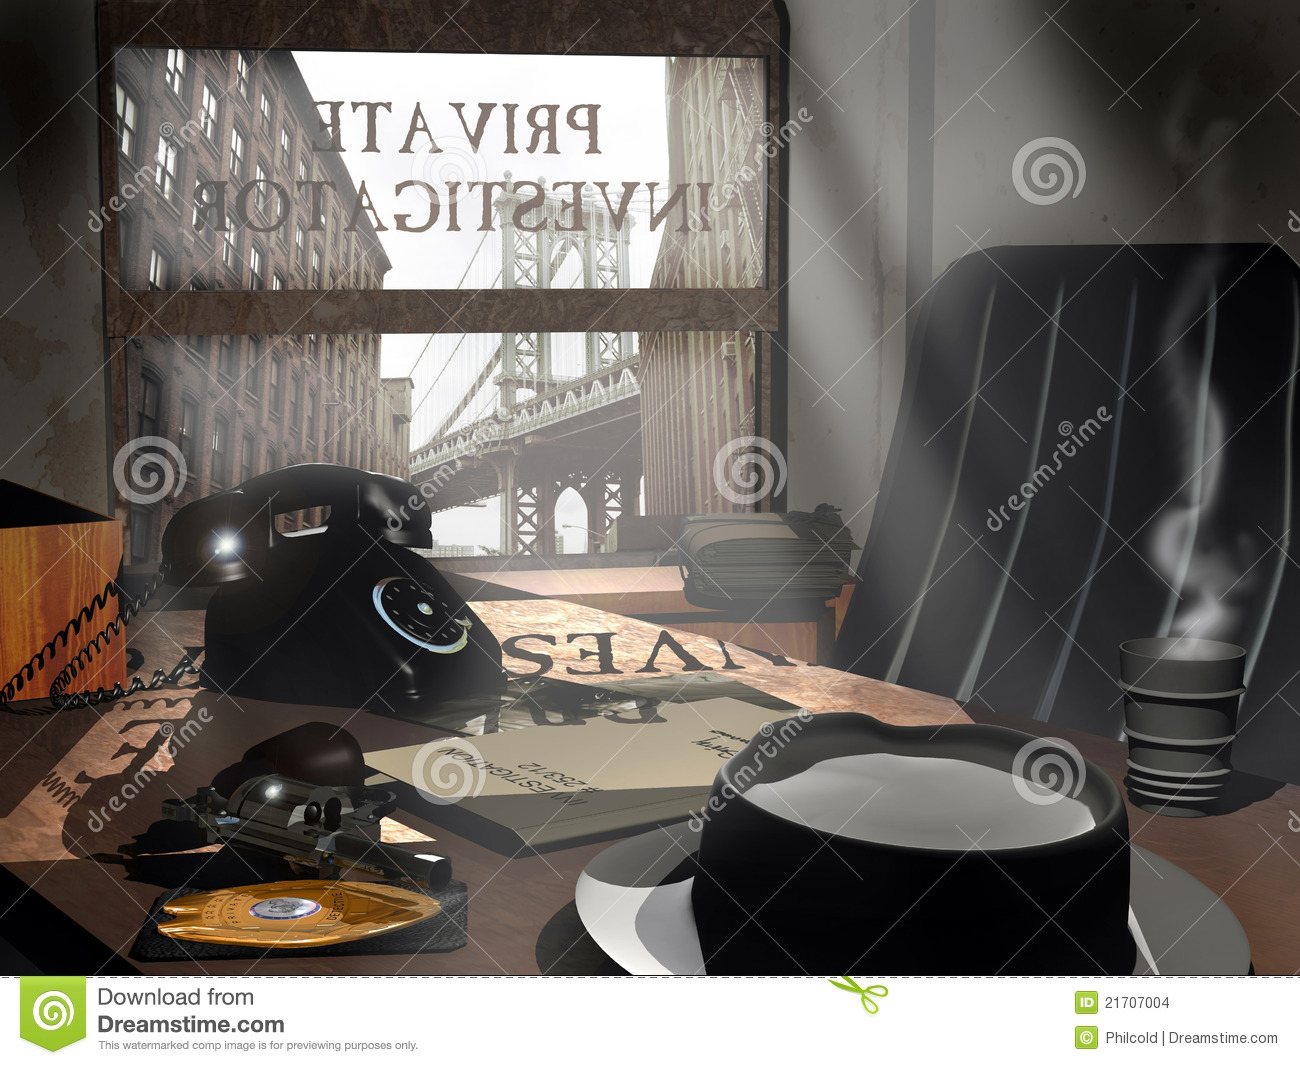 Private Investigator's Office Stock Images - Image: 21707004